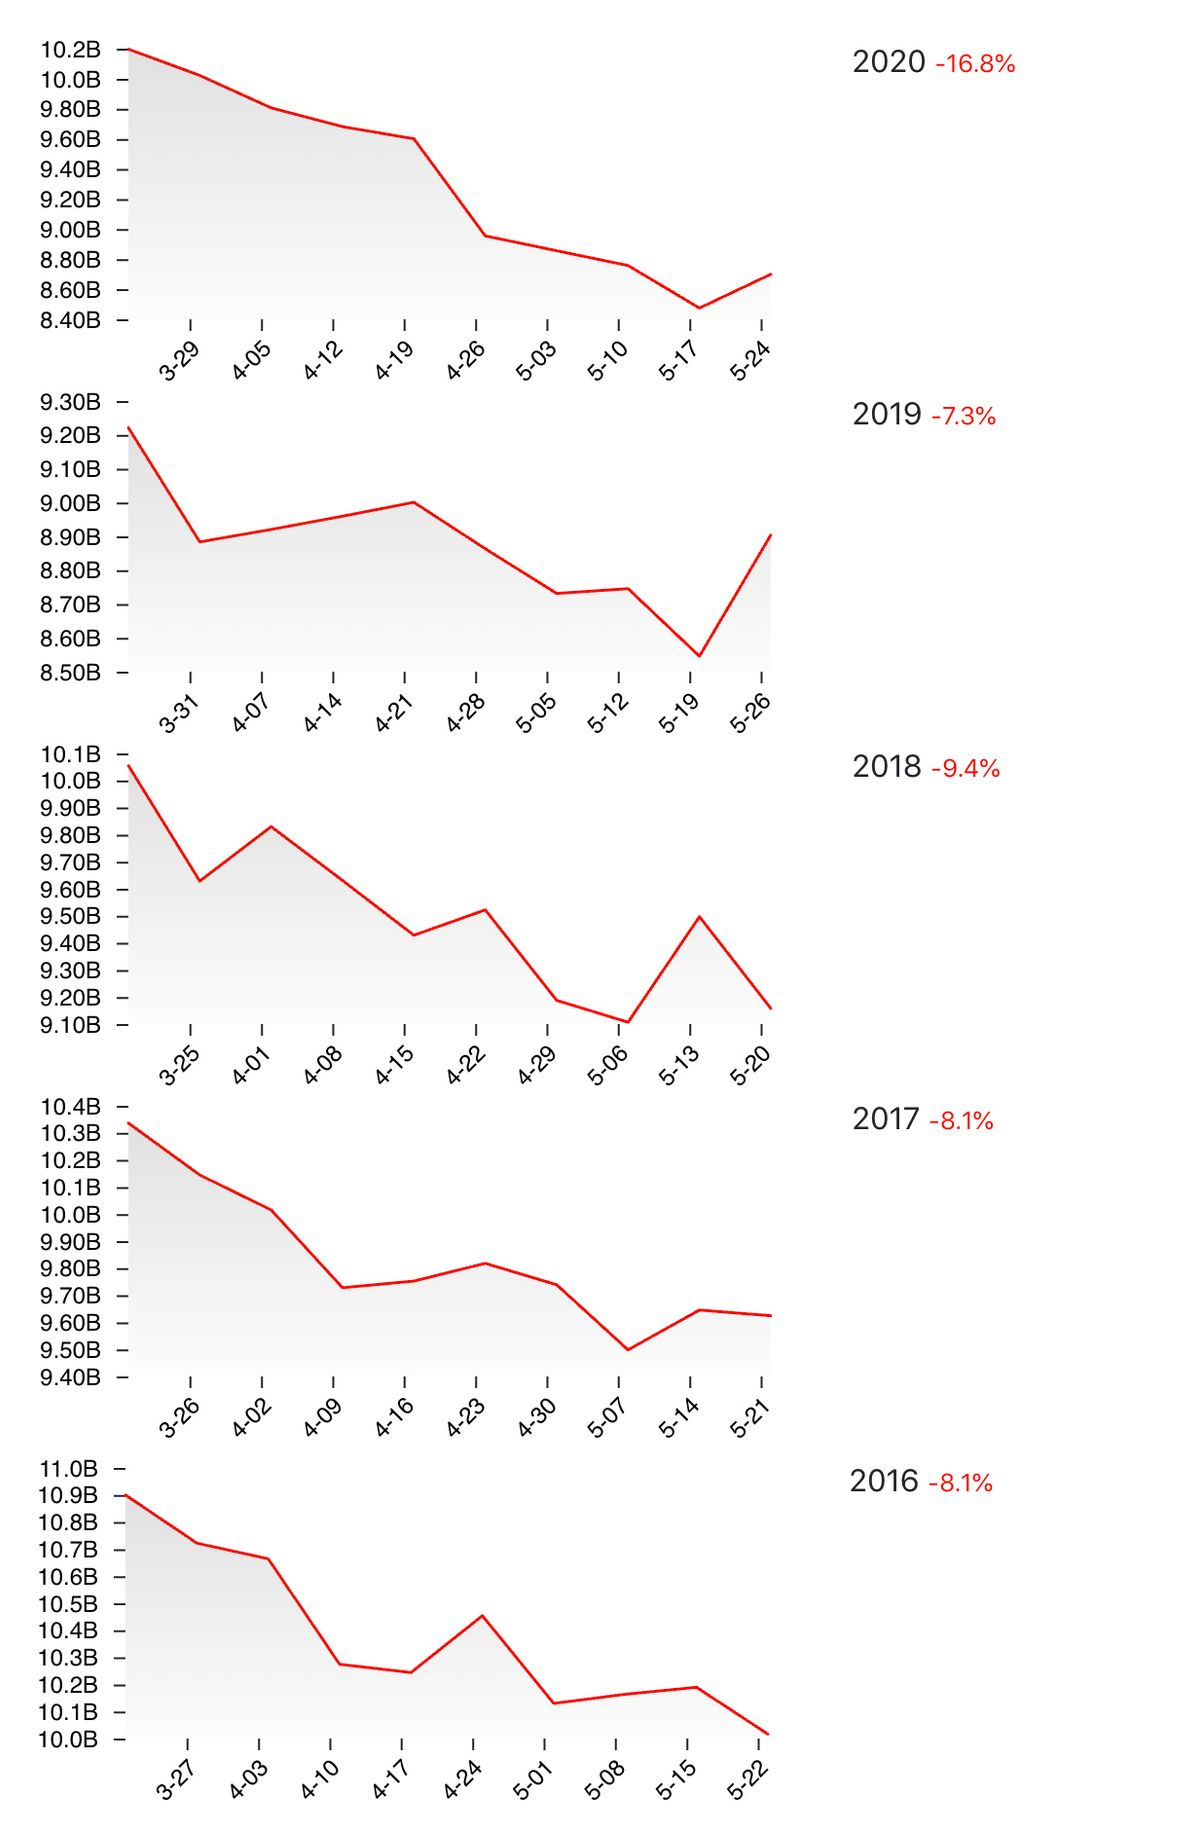 Year over year viewership changes from 2016 to 2020.